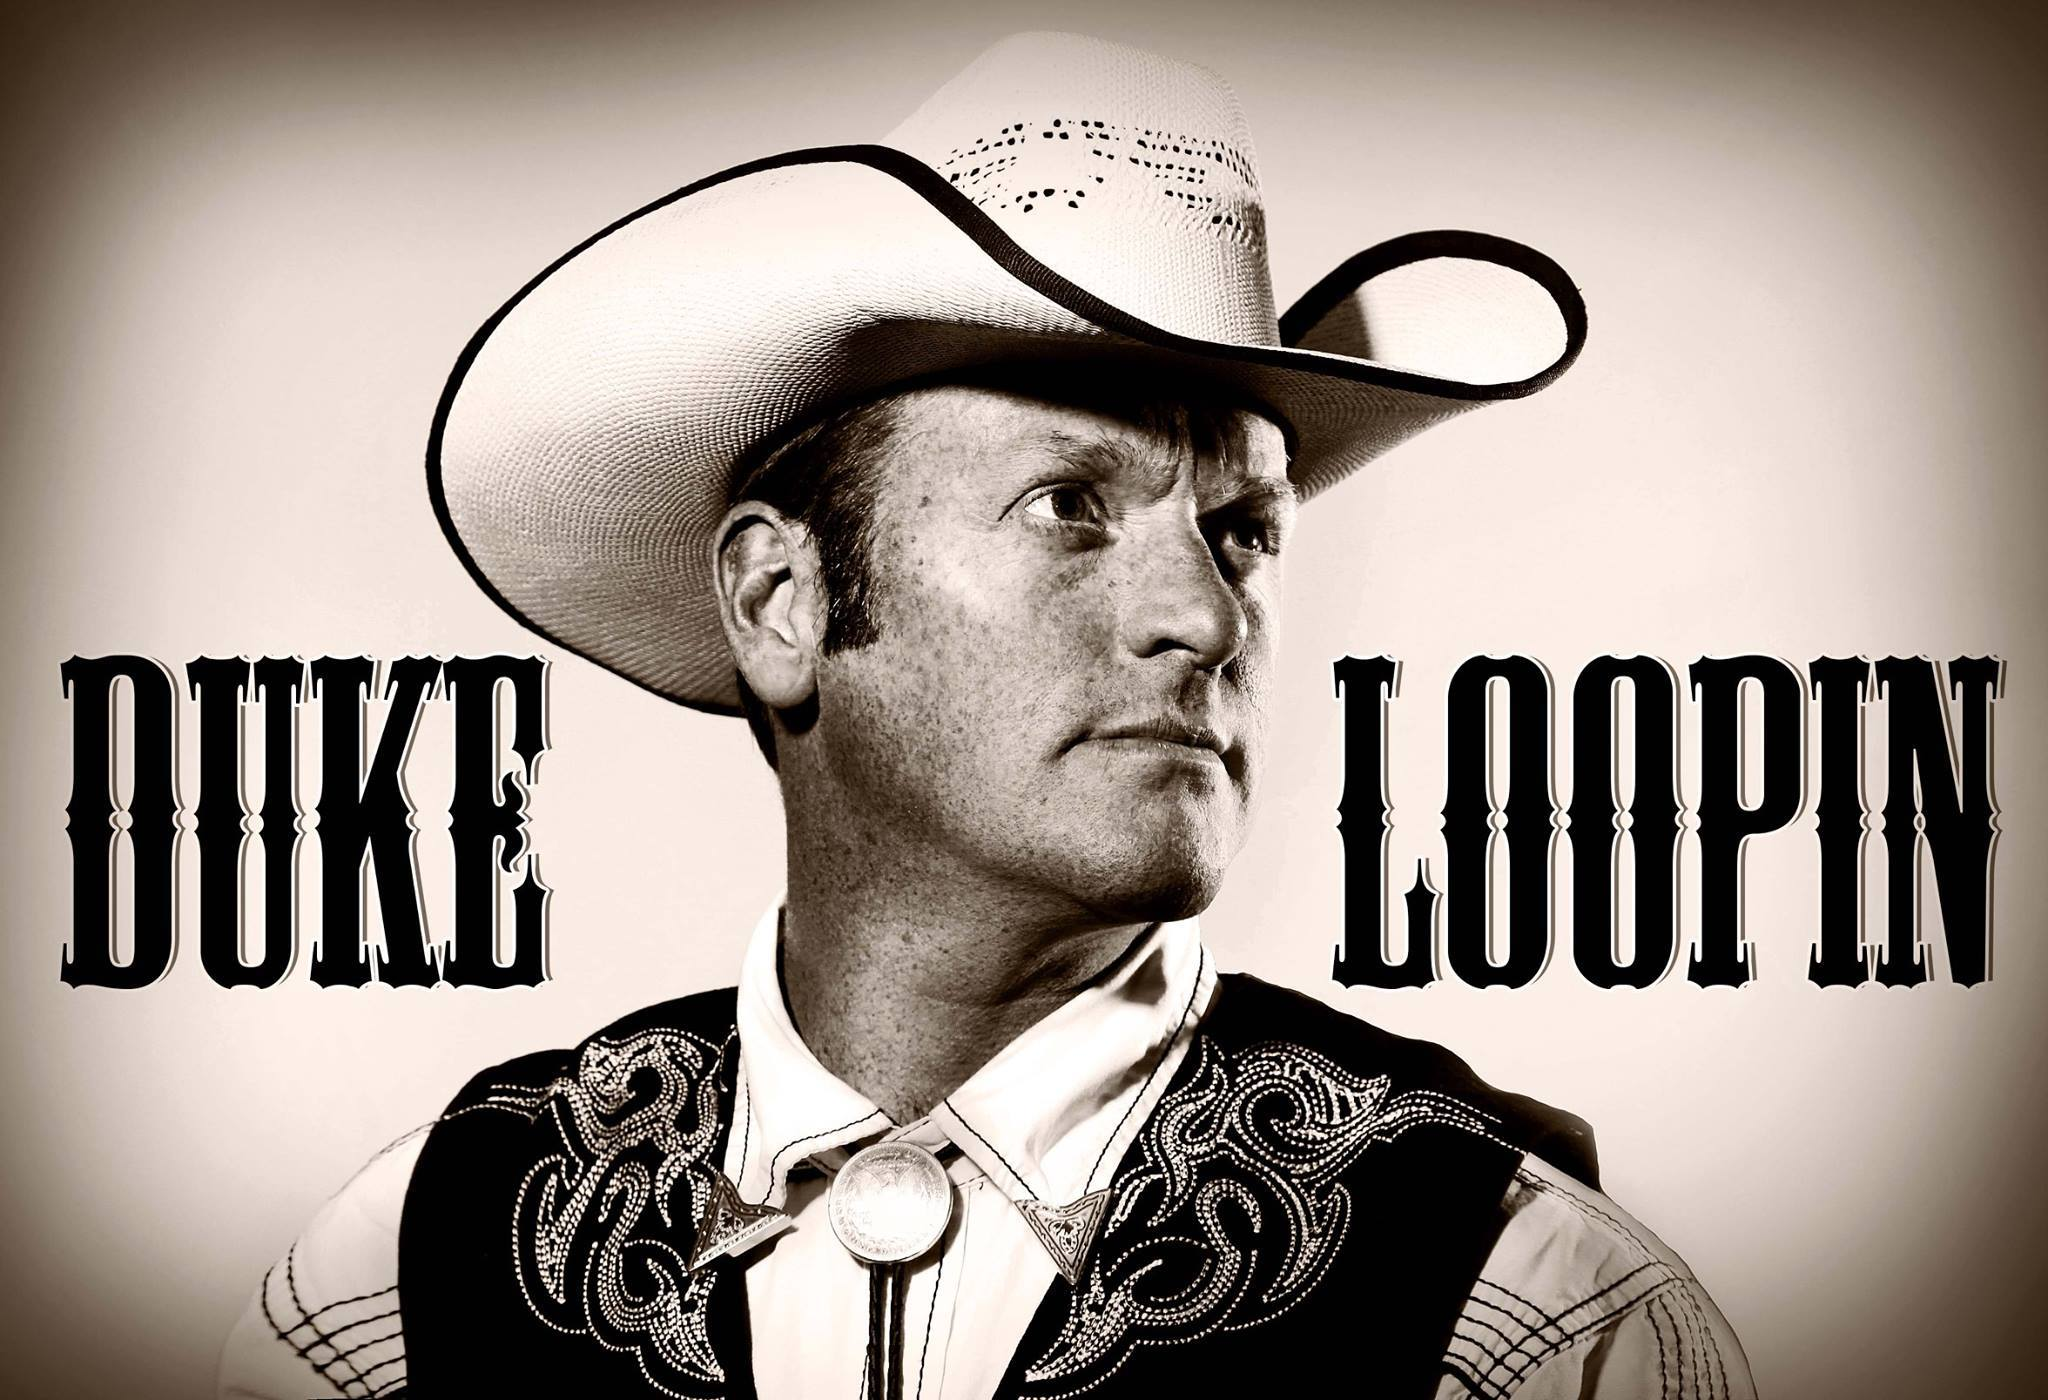 Portrait des Cowboy Duke Loopin